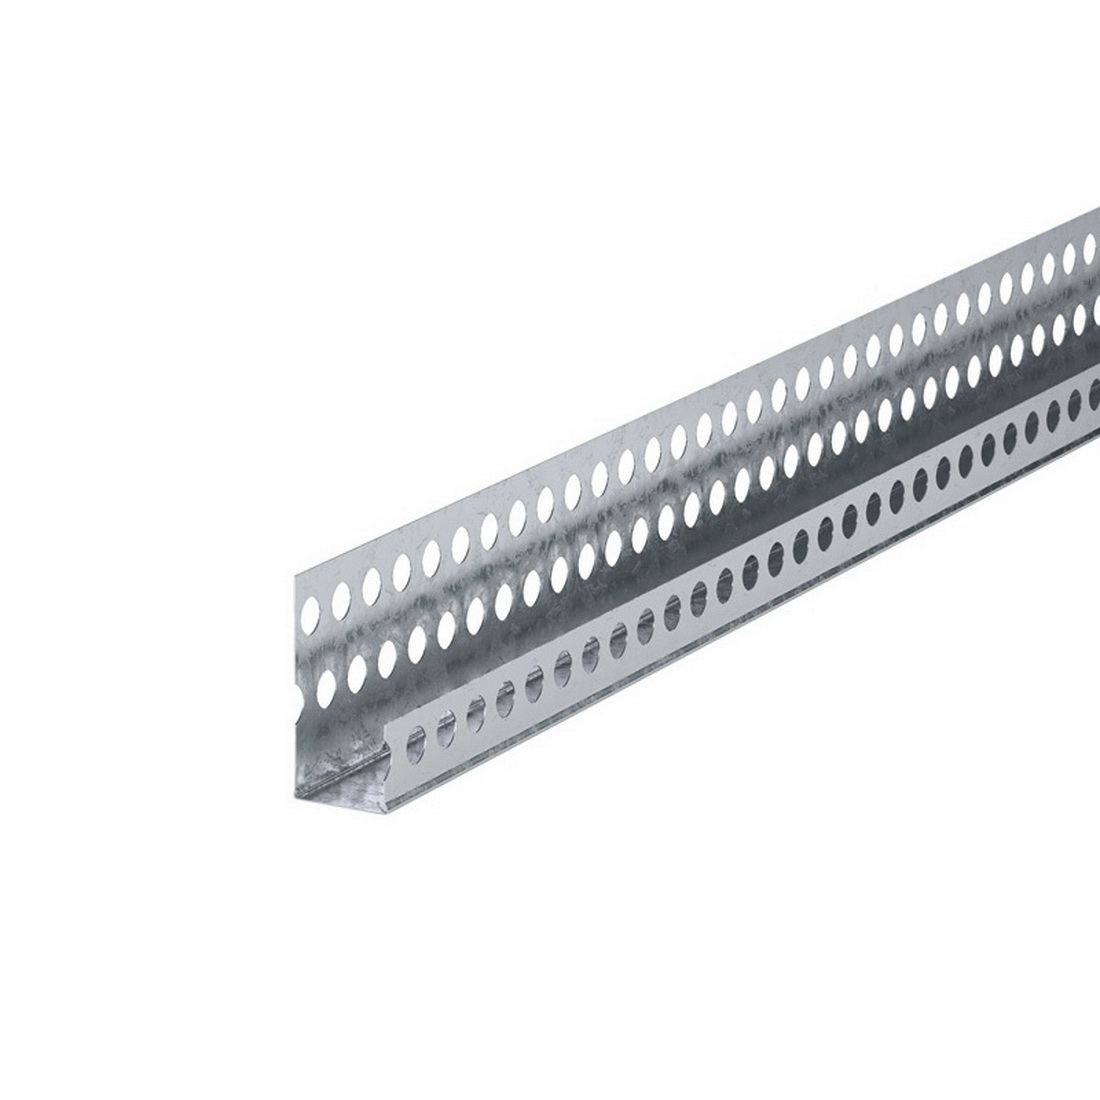 Rondo Stopping Plaster Casing Bead 13mm x 2400mm Galvanized Steel For P13